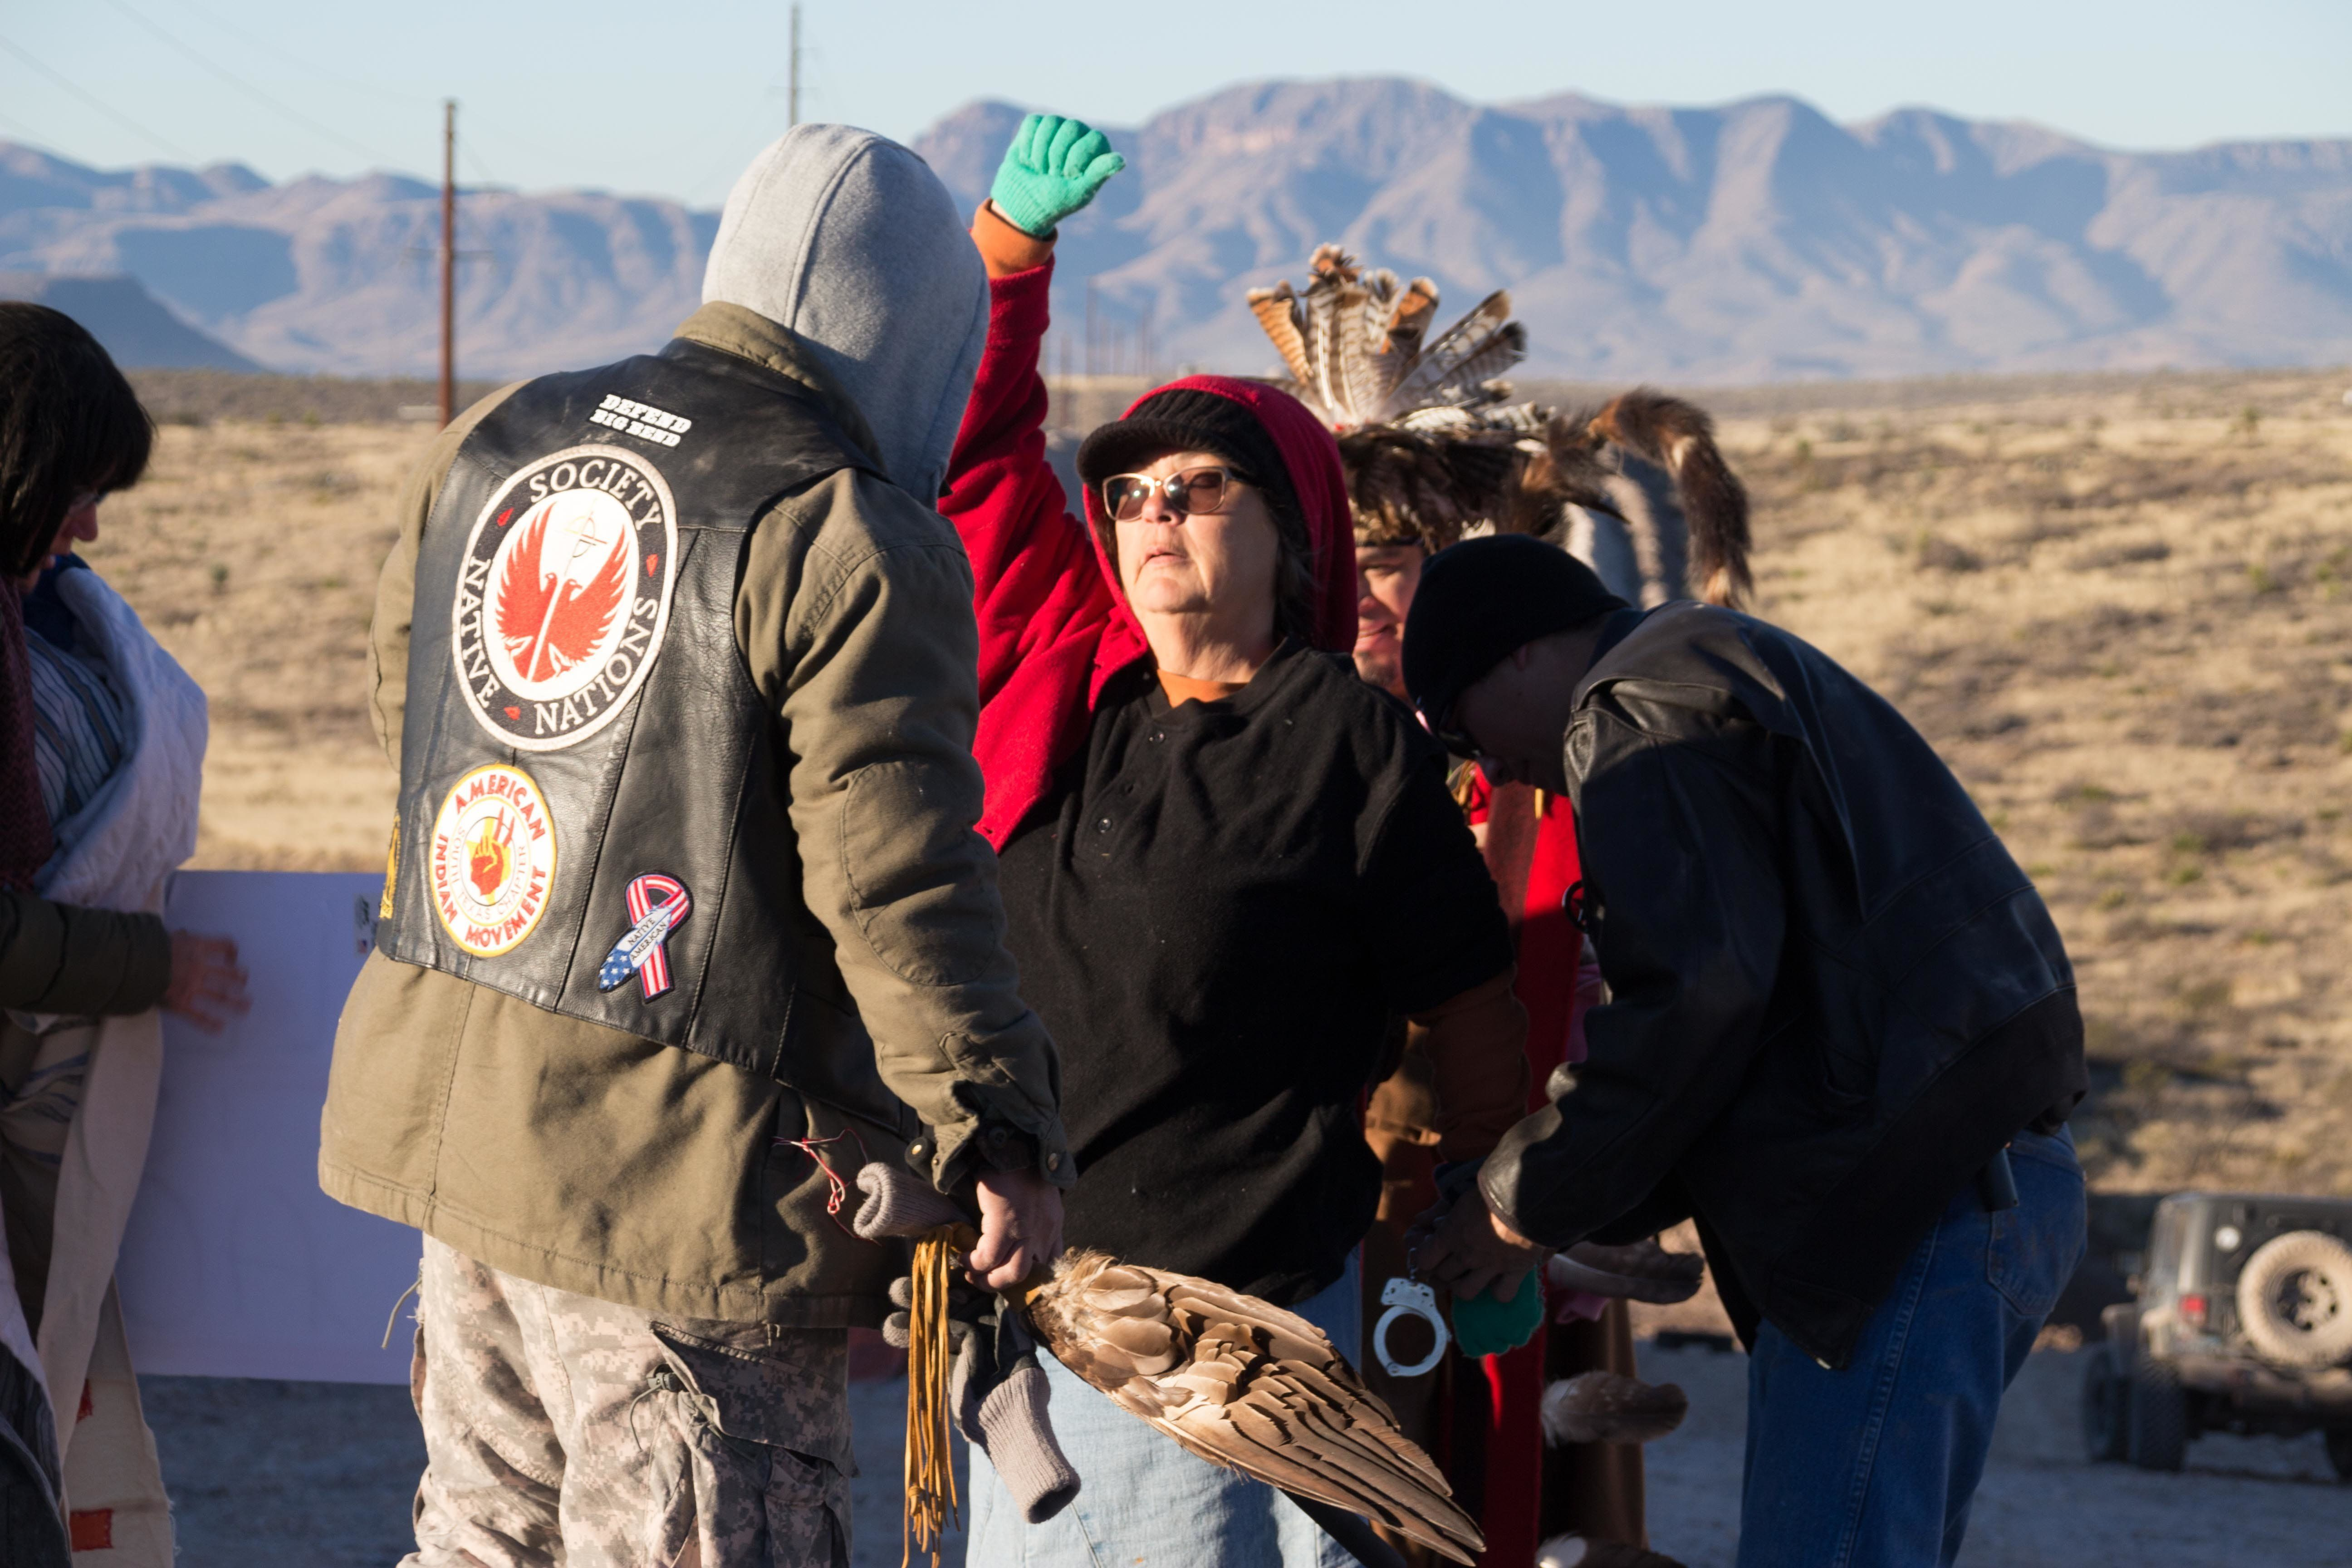 Protesters trying to stop a natural gas pipeline in west Texas were arrested on Jan 7 near Marfa